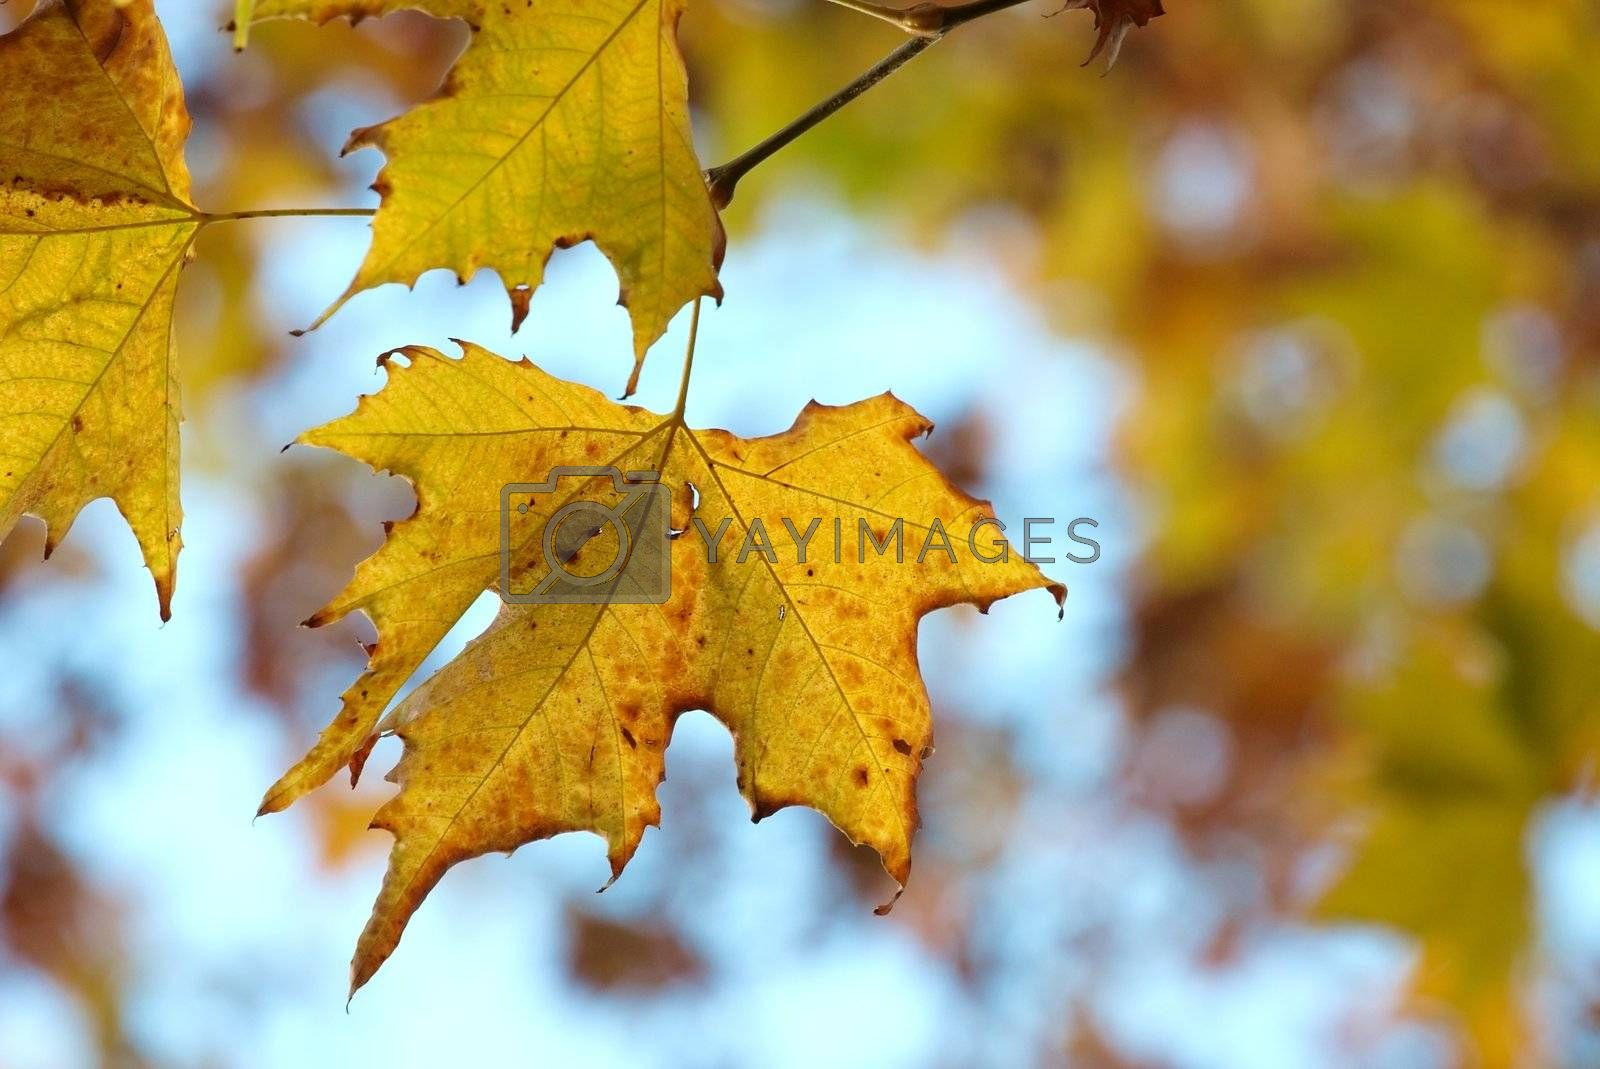 Colorful leaves of a tree in autumn